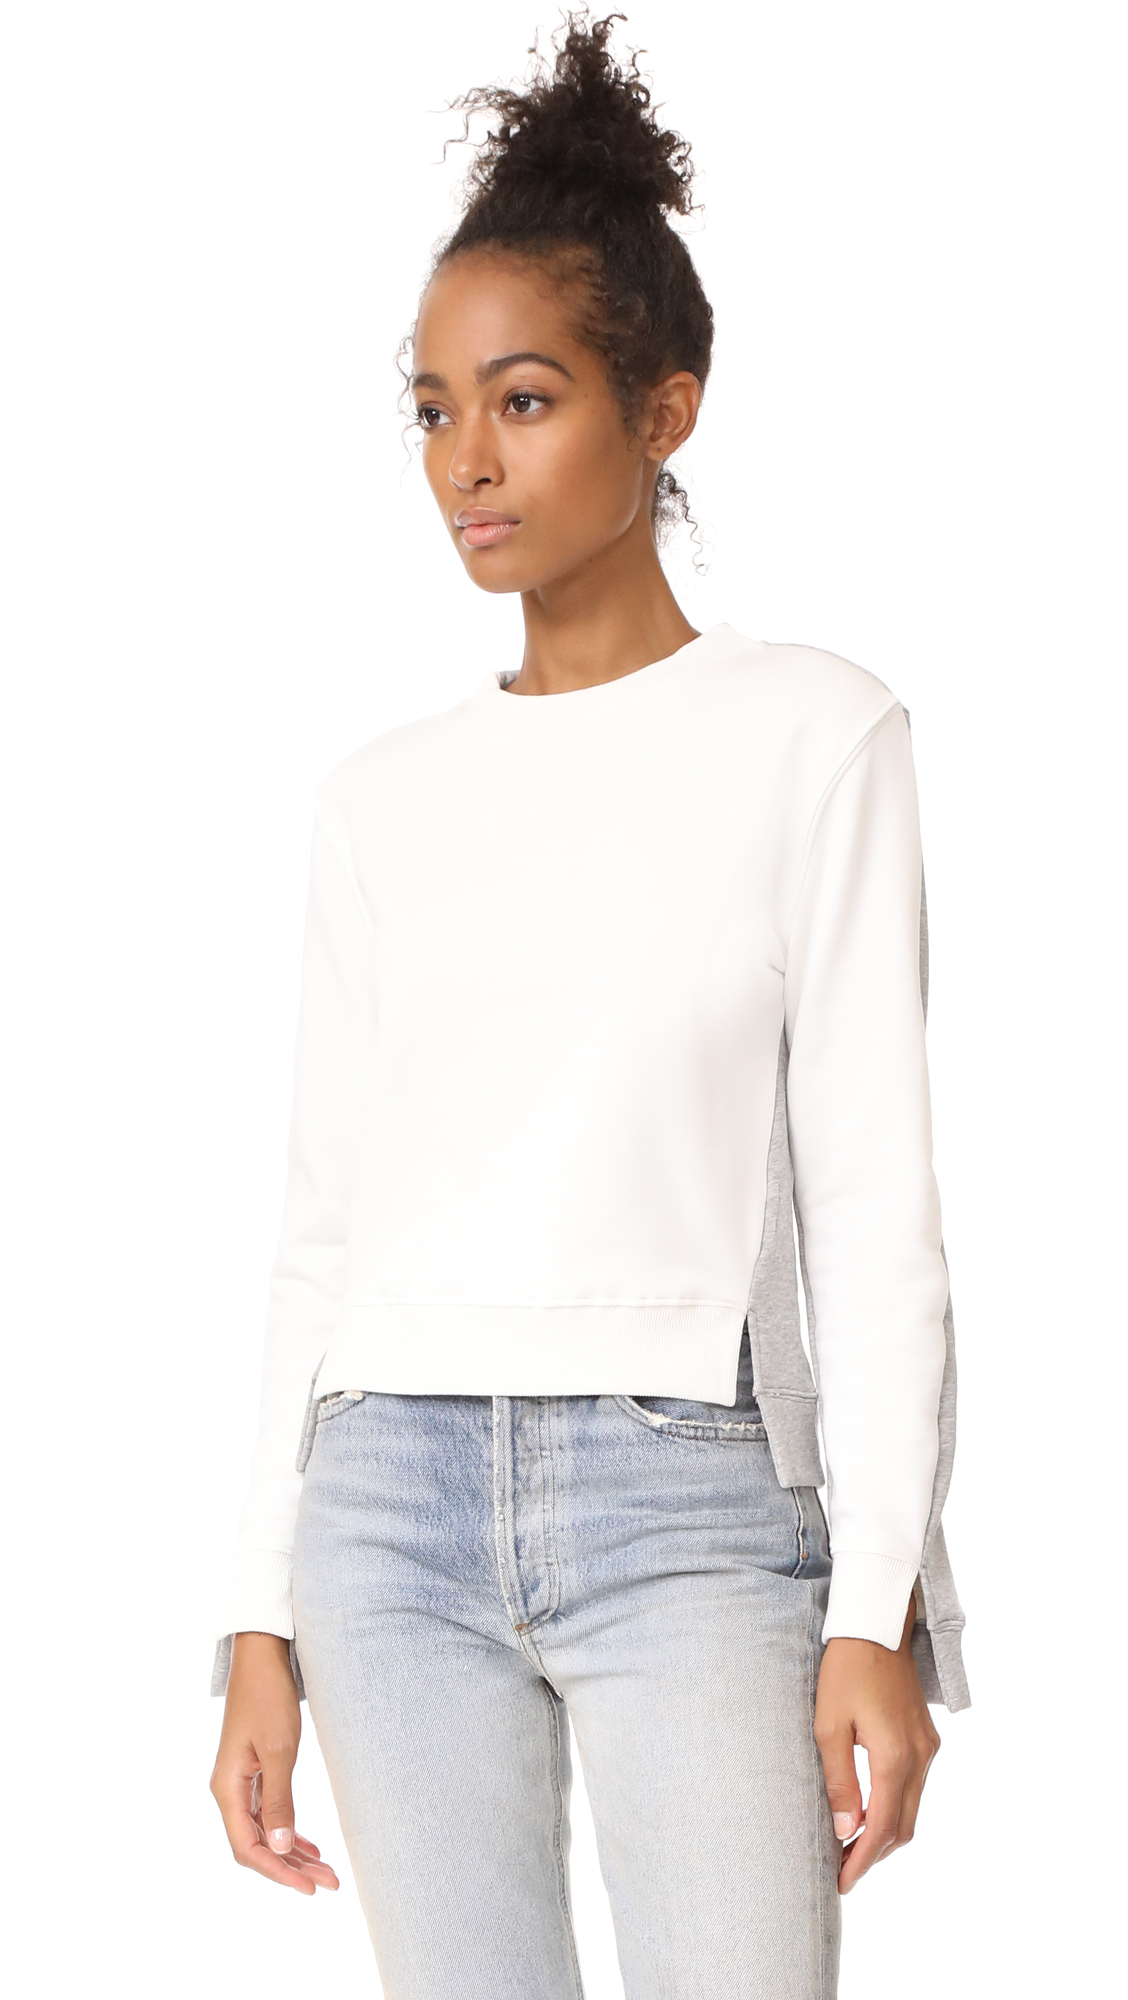 EVIDNT French Terry Colorblocked Sweatshirt - Off White/Heather Grey